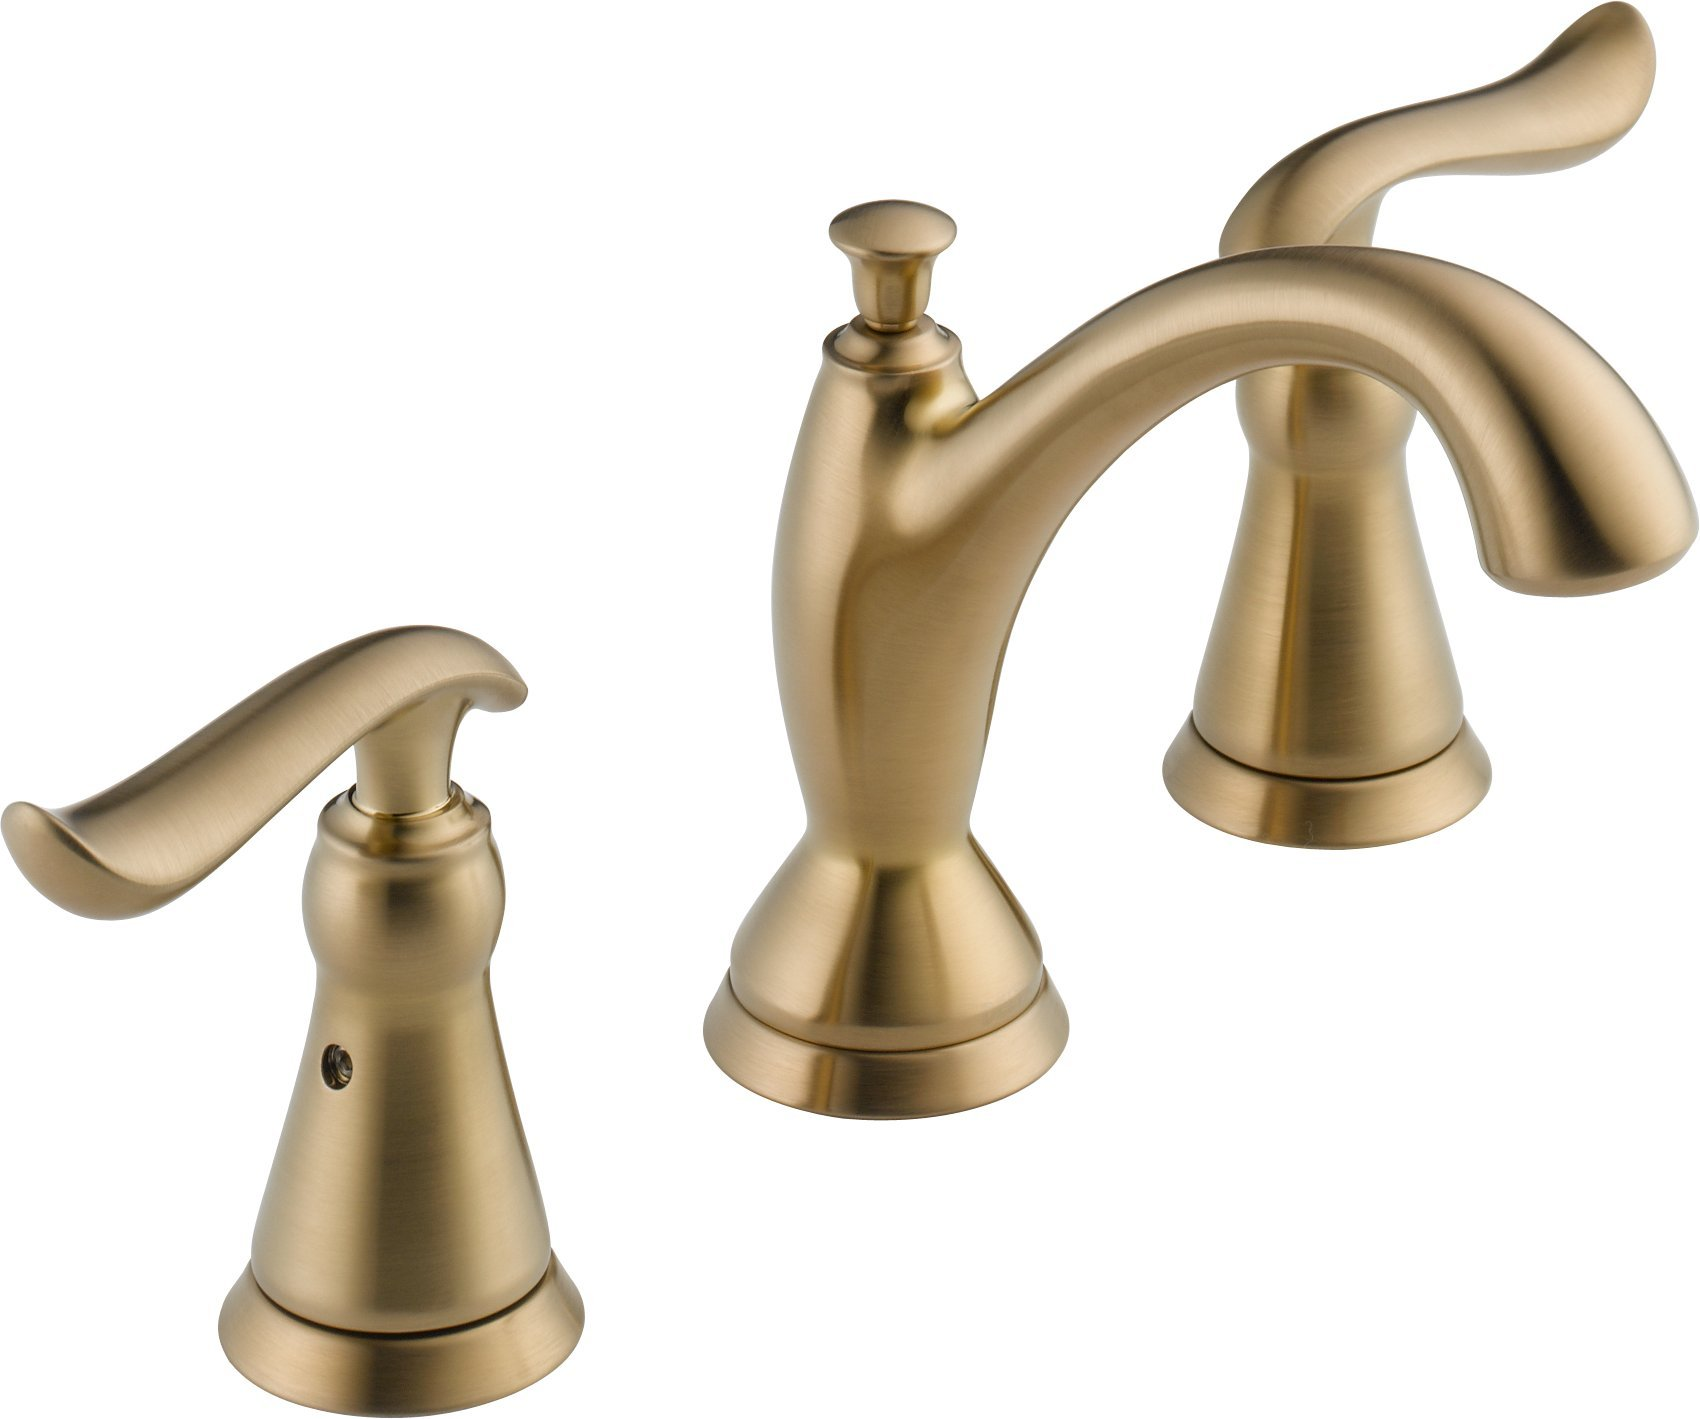 Delta Faucet 3594-CZMPU-DST Linden Two Handle Widespread Bathroom Faucet, Champagne Bronze by DELTA FAUCET